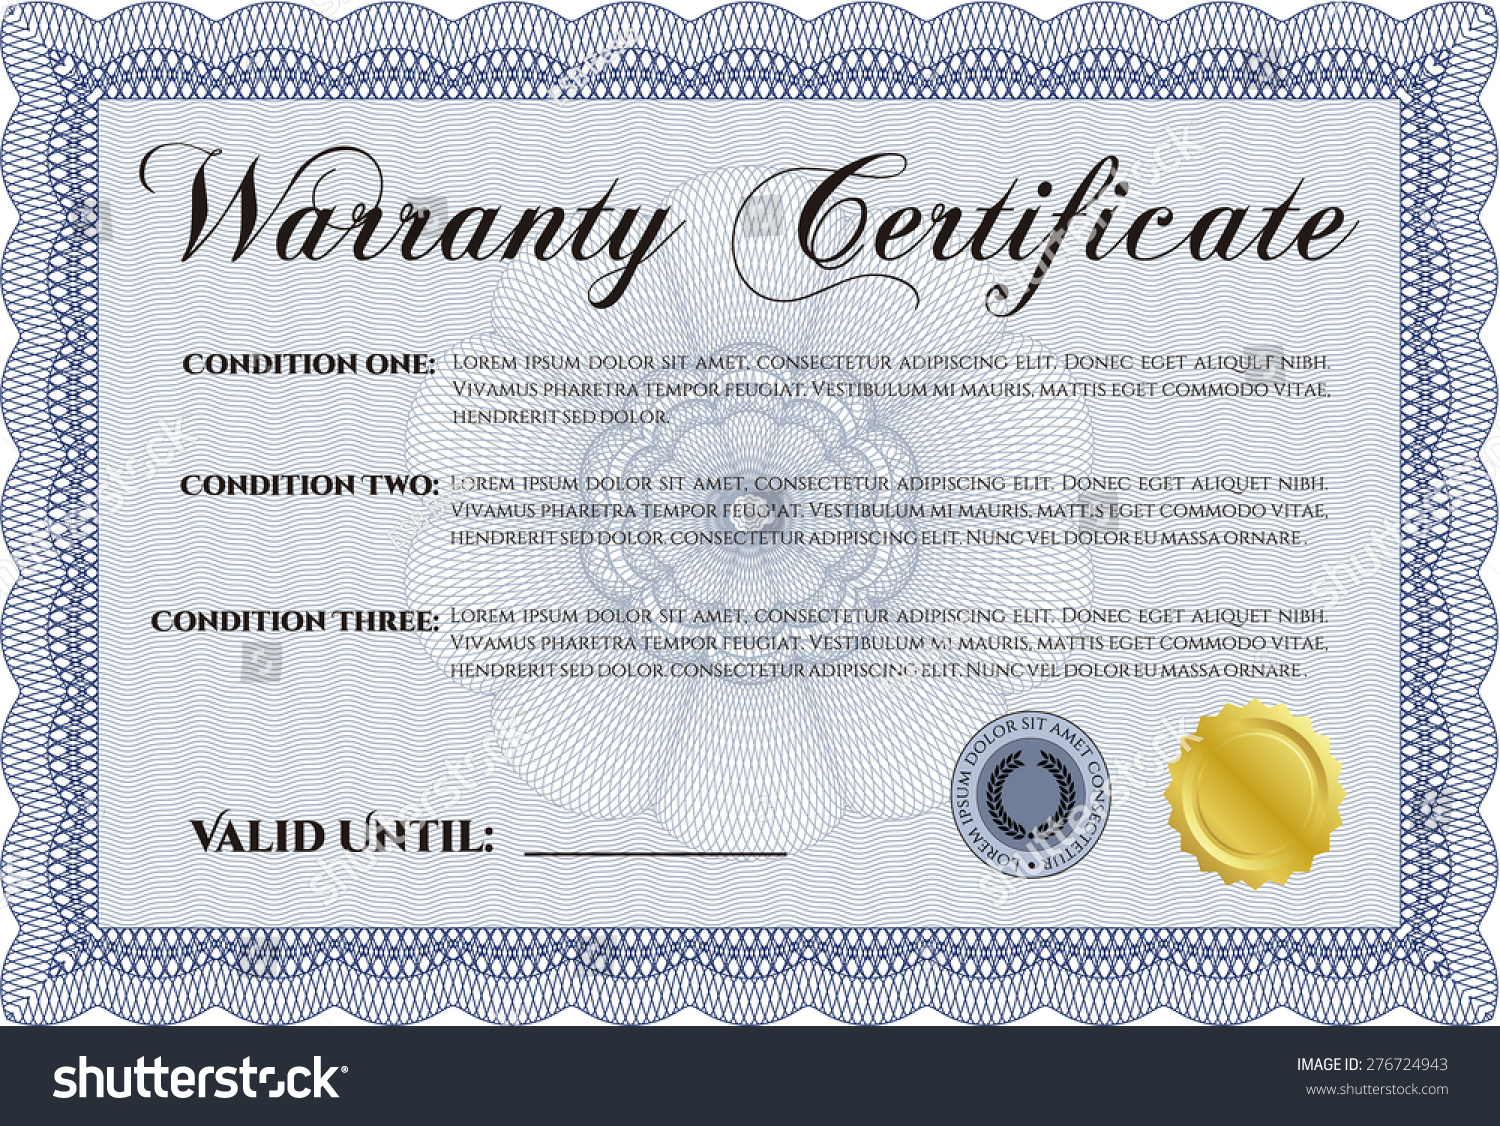 Warranty certificate sample text background perfect stock vector warranty certificate with sample text with background perfect style yadclub Image collections